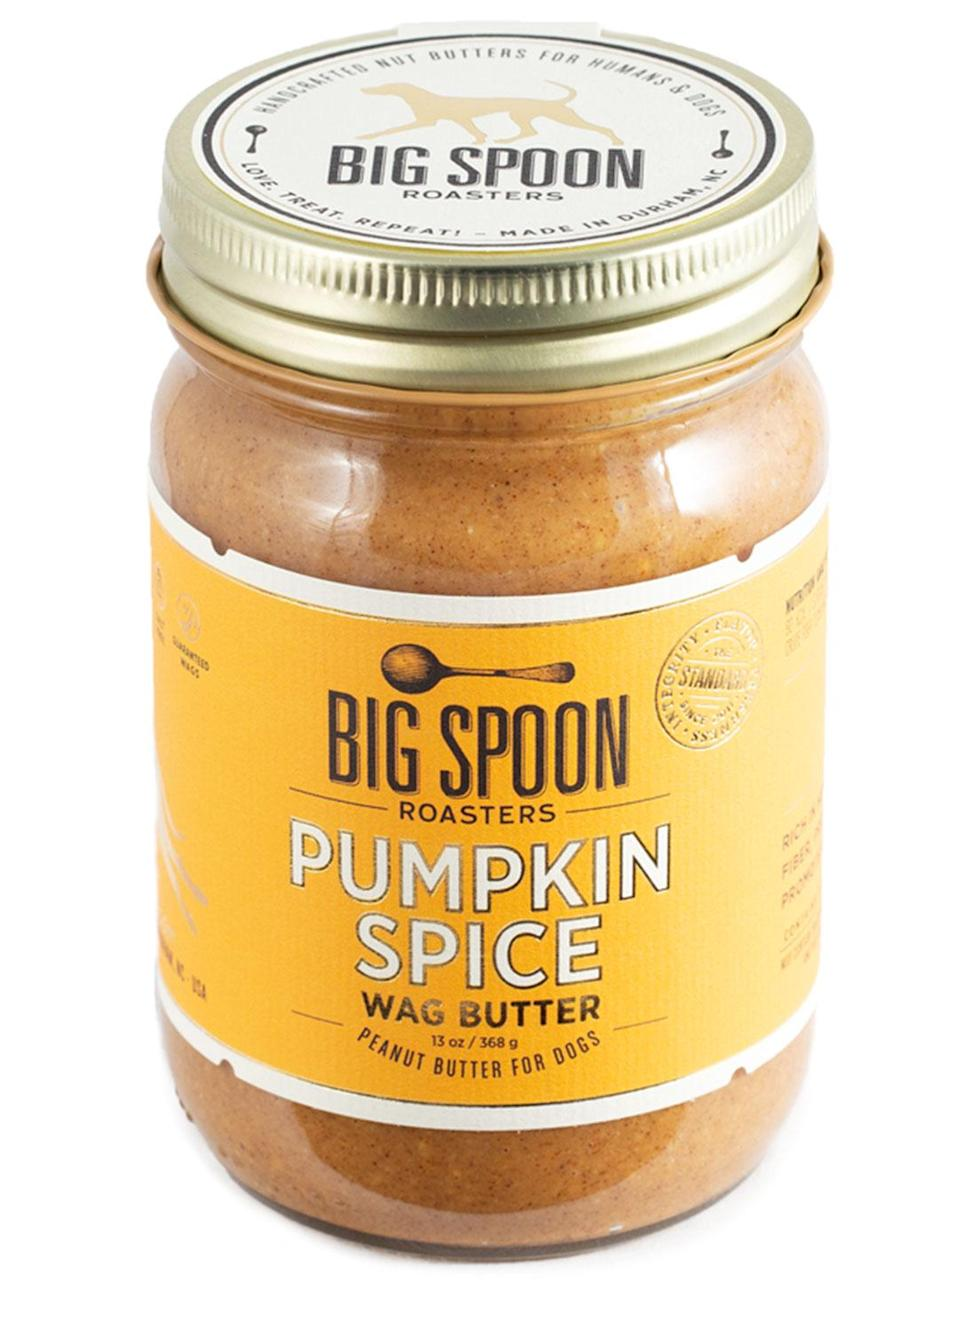 """<p>This peanut butter made just for dogs has a pumpkin spice option for the canines who want to add a little autumn to their bowl. </p> <p><strong>Buy it!</strong> Pumpkin Spice Wag Butter, $9.95; <a href=""""https://bigspoonroasters.com/products/pumpkin-spice-wag-butter"""" rel=""""nofollow noopener"""" target=""""_blank"""" data-ylk=""""slk:BigSpoonRoasters.com"""" class=""""link rapid-noclick-resp"""">BigSpoonRoasters.com</a></p>"""